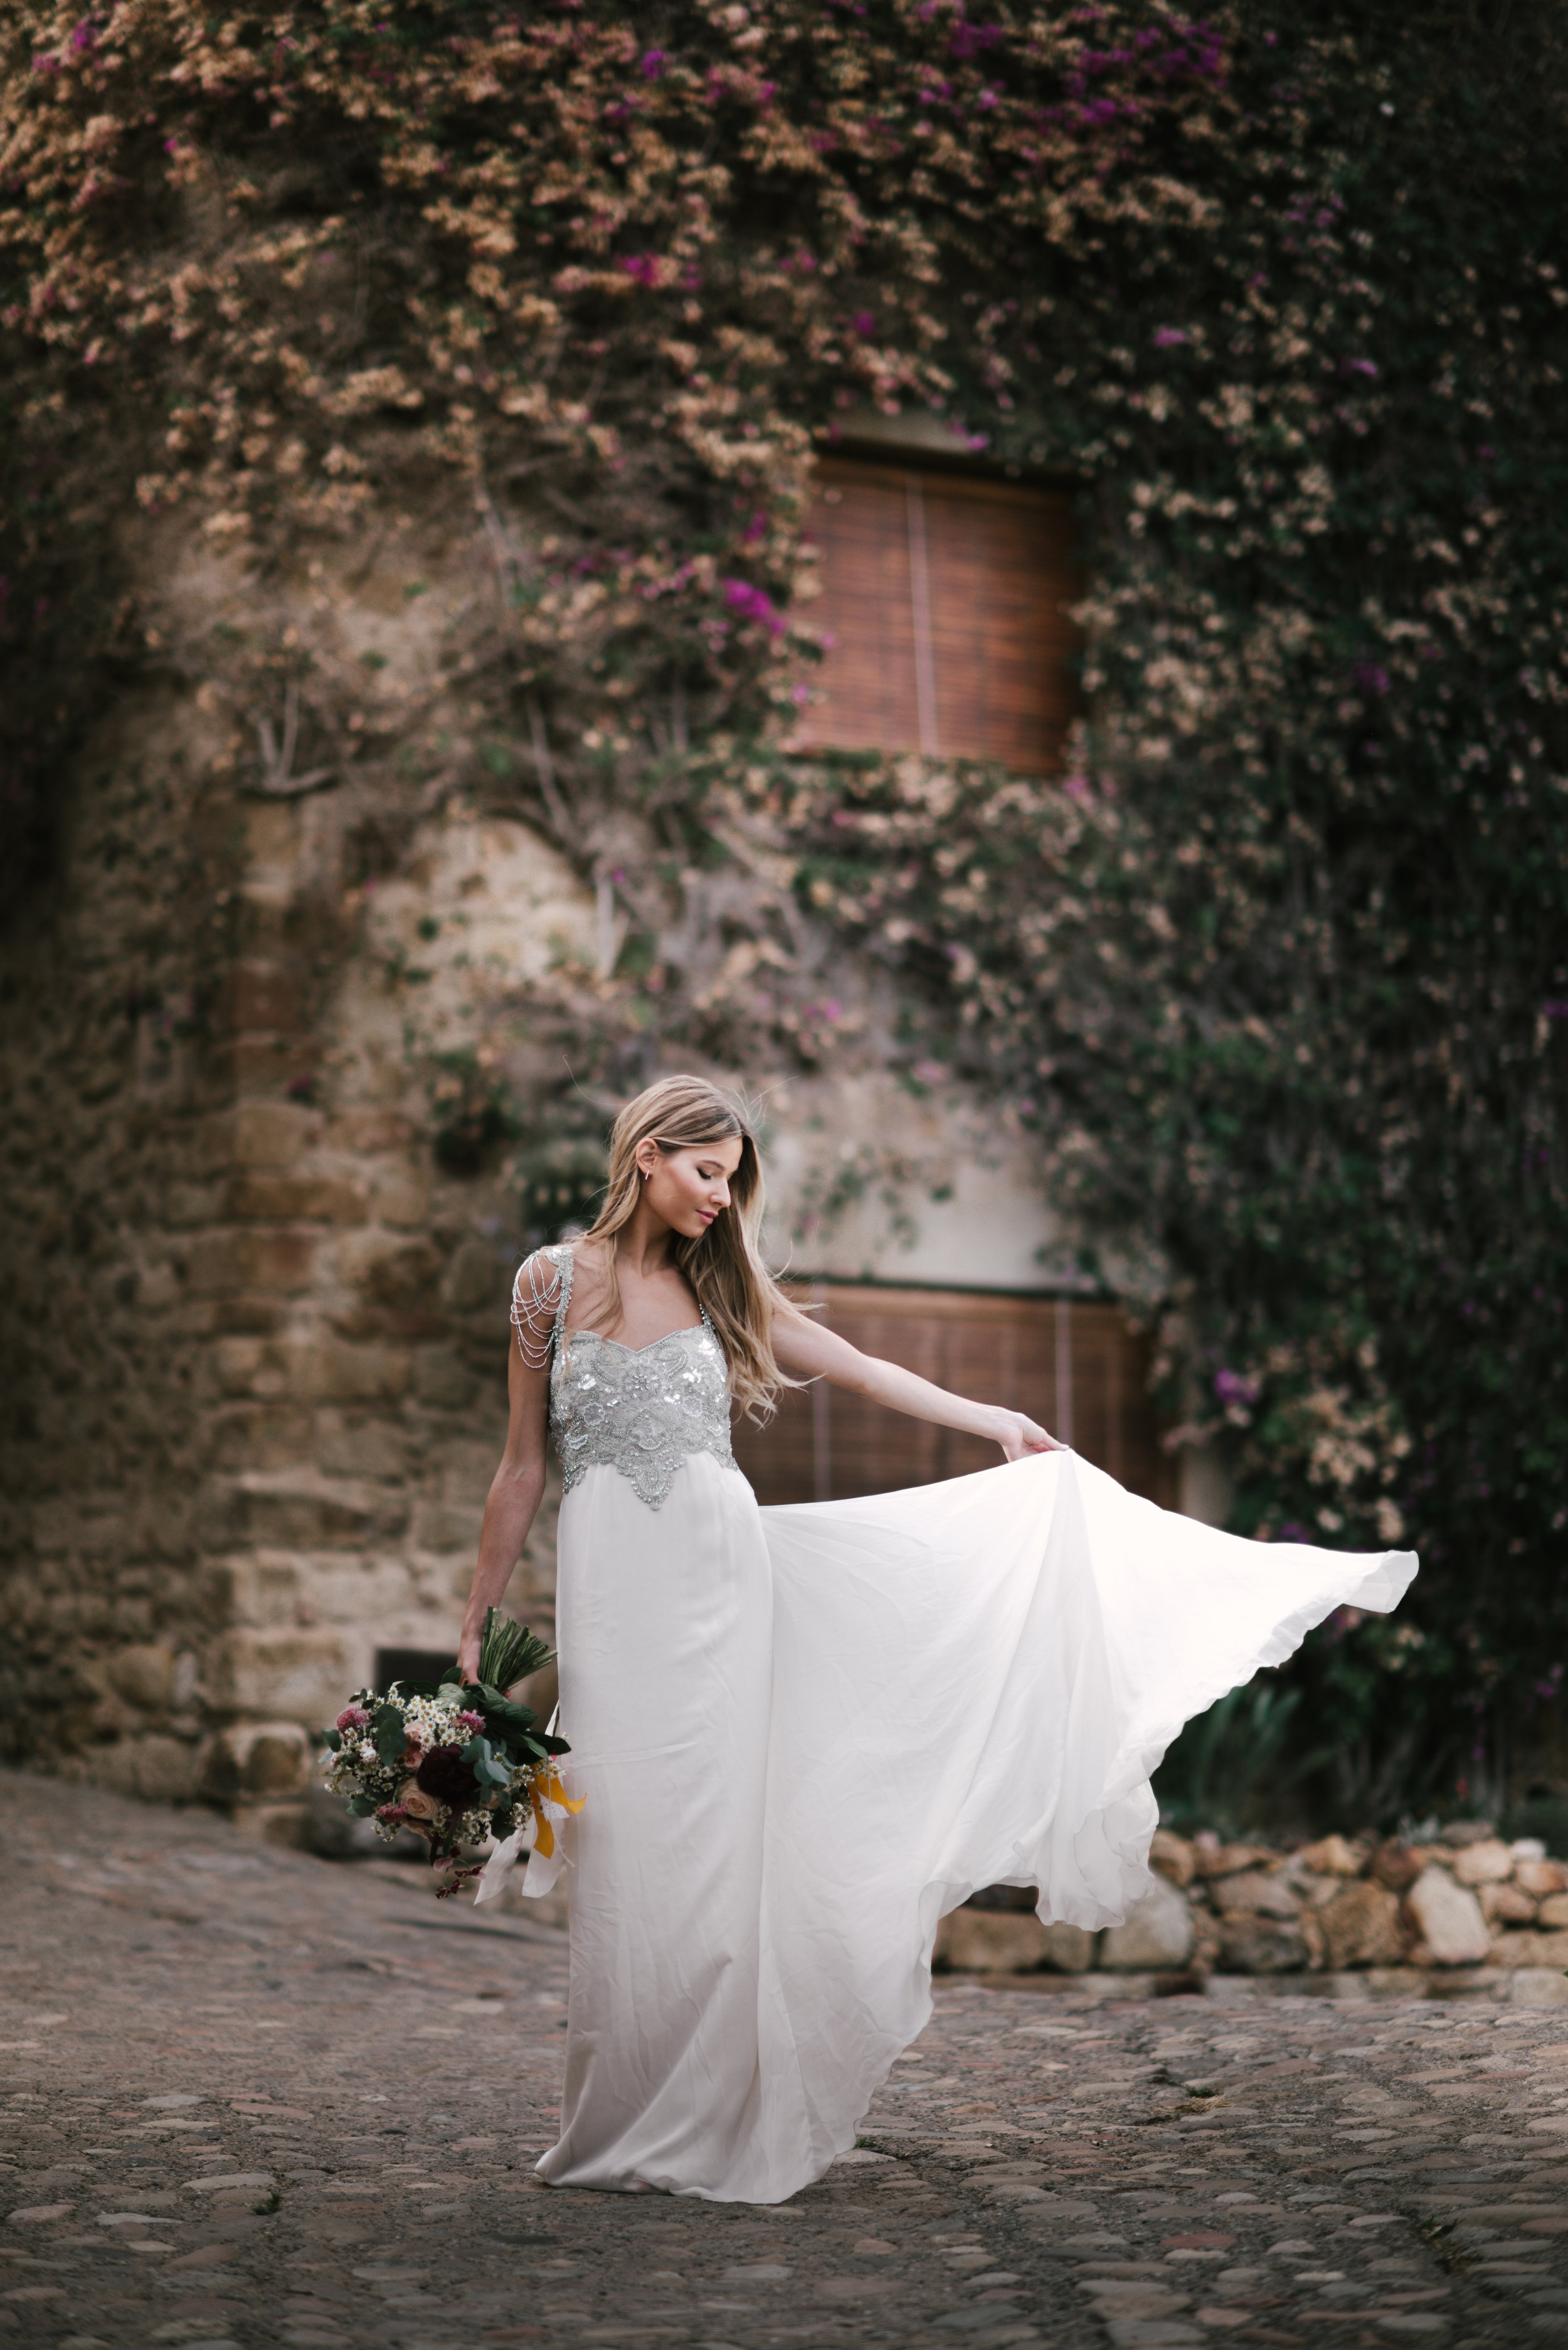 20170719 LOVELENSCAPES WEDDING PHOTOGRAPHY X MARIE MARRY ME WEDDING VIDEOGRAPHY X ANNA CAMPBELL CHLOE WEDDING GOWN ETERNAL HEART COLLECTION 2017  1.jpg